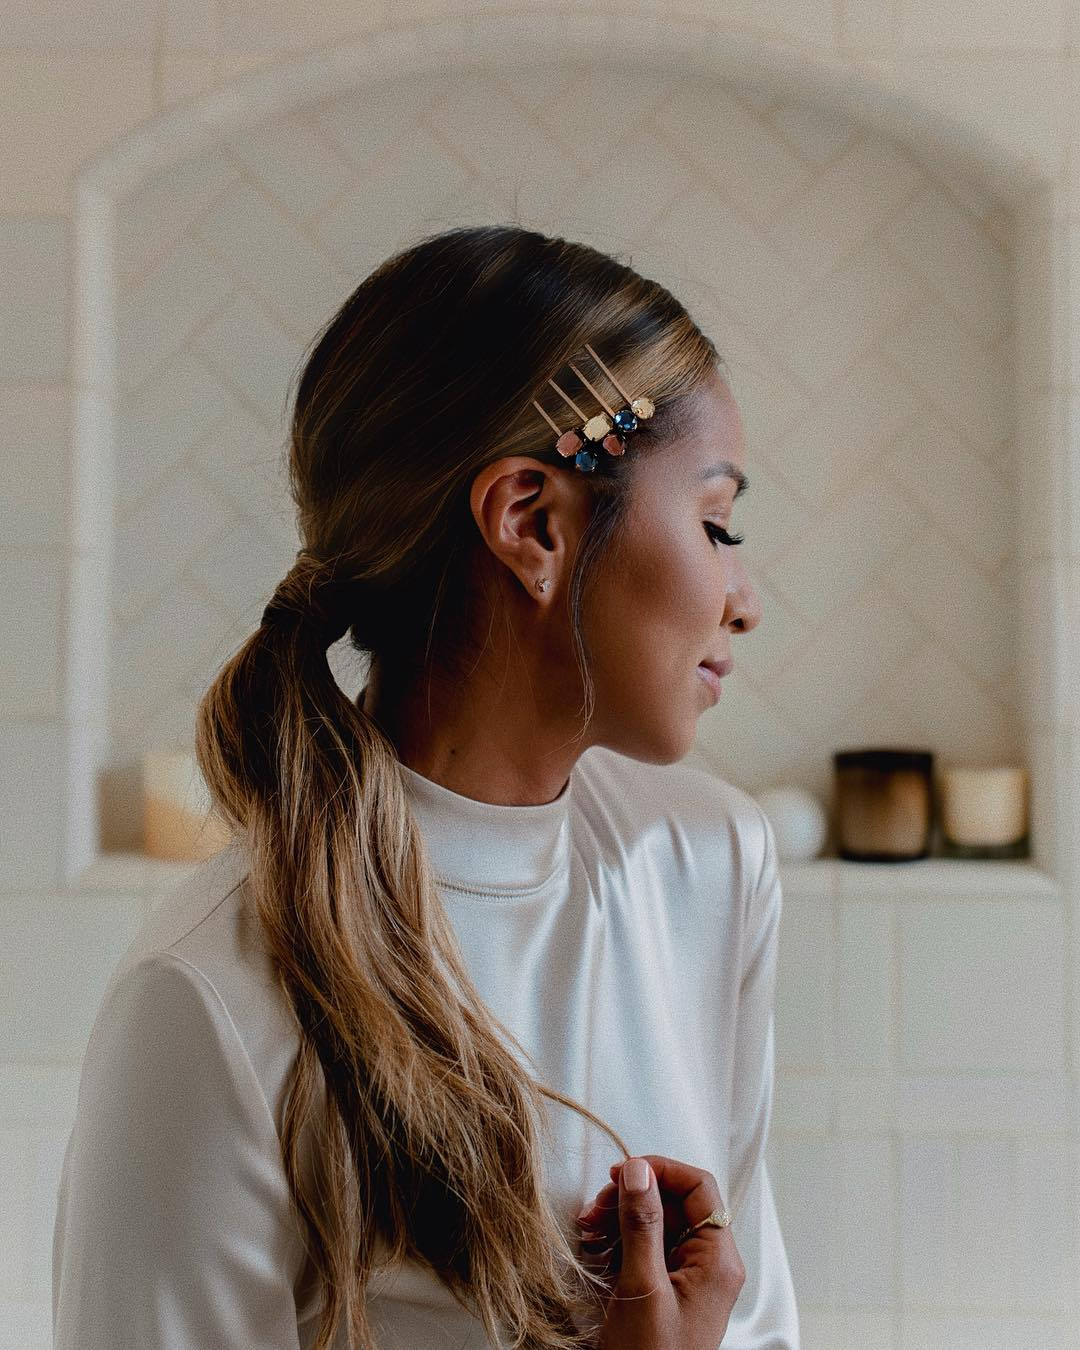 Woman with long dark brown hair with caramel highlights styled into a low ponytail, wearing hair slides and posing in a bedroom setting